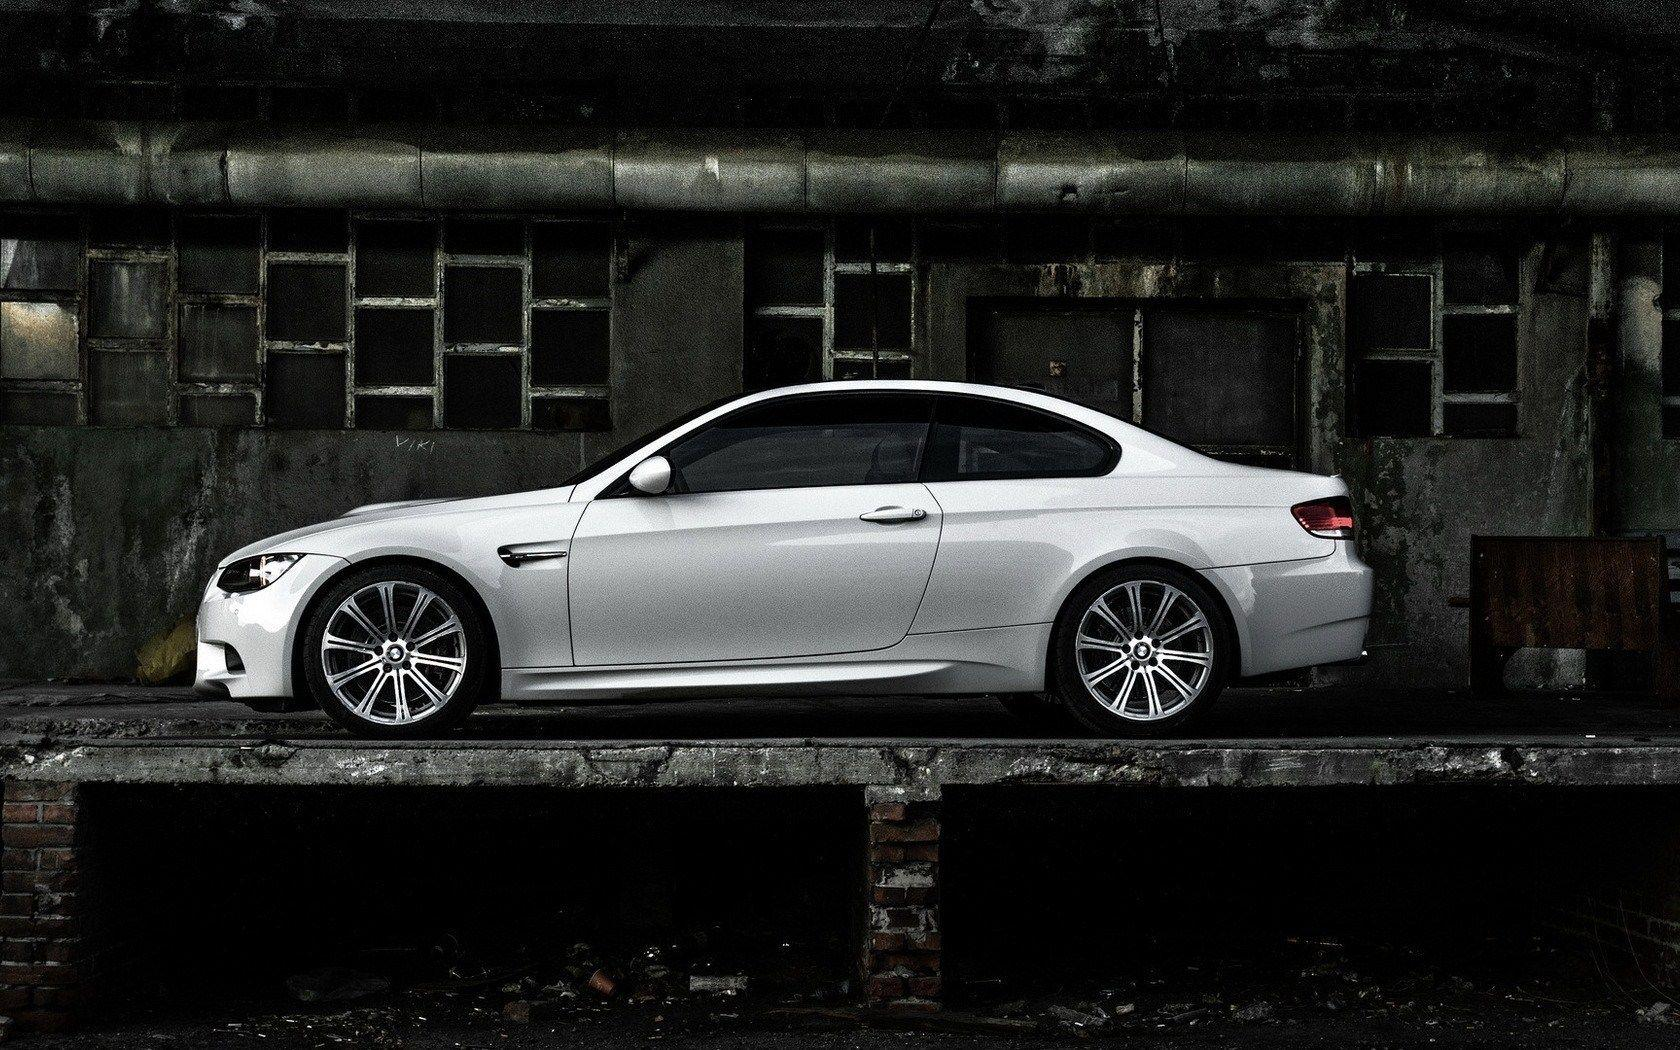 BMW M3 Wallpapers 1680x1050